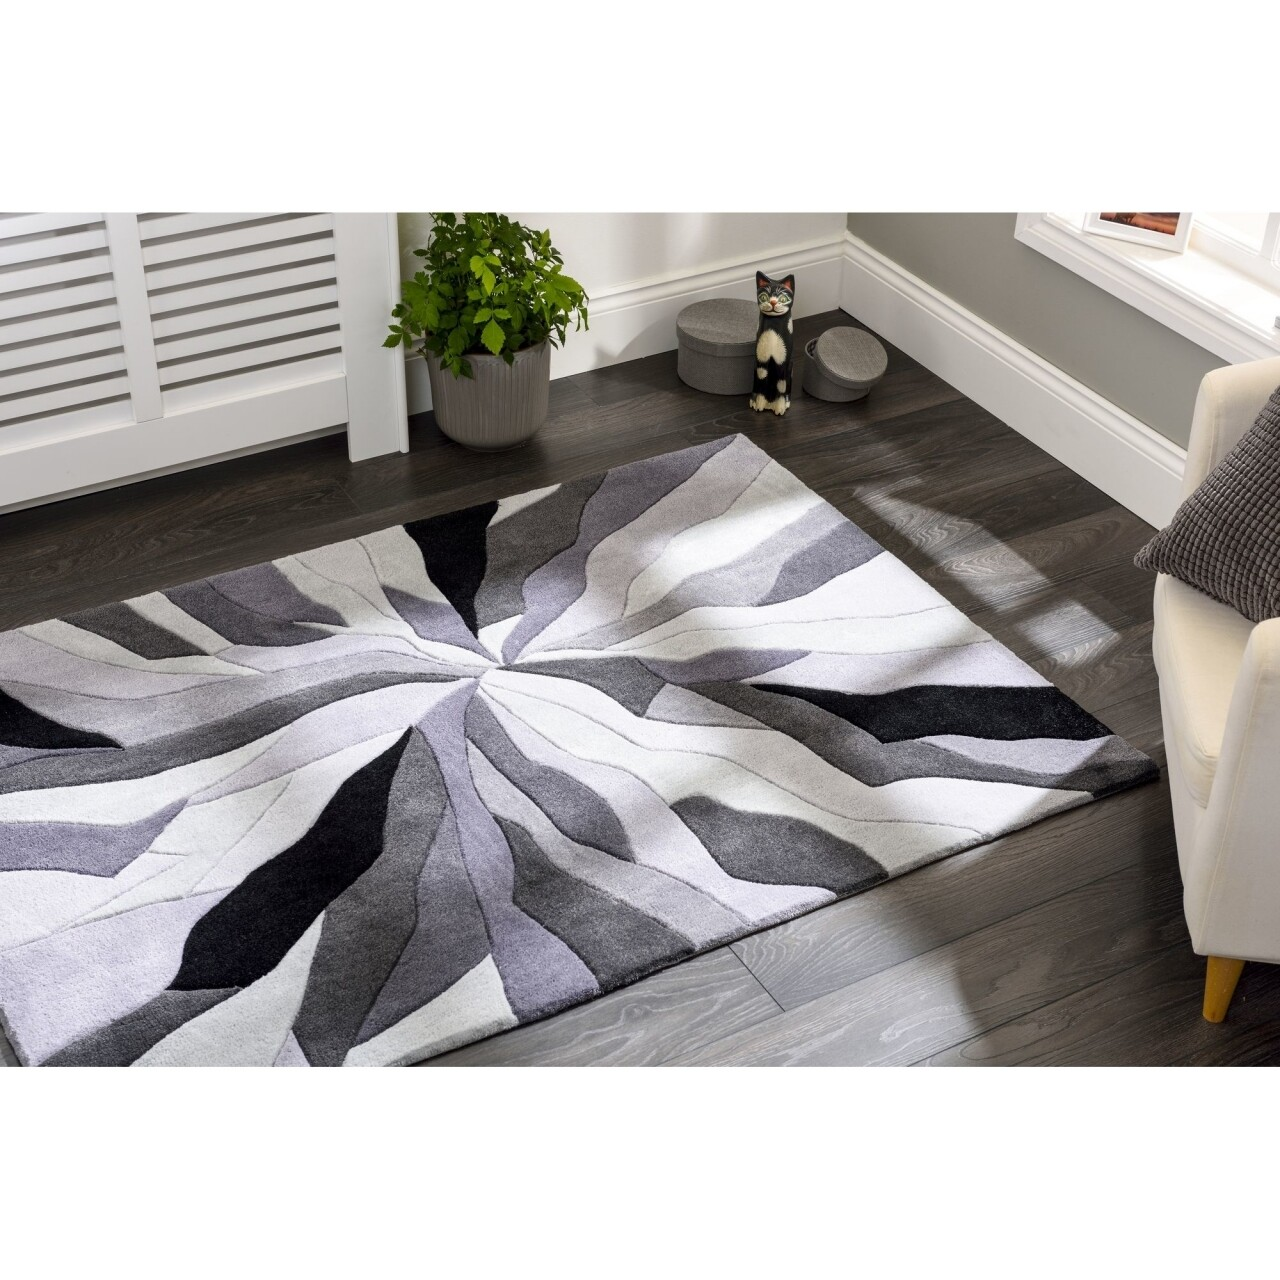 Covor Infinite Splinter Grey 120X170 cm